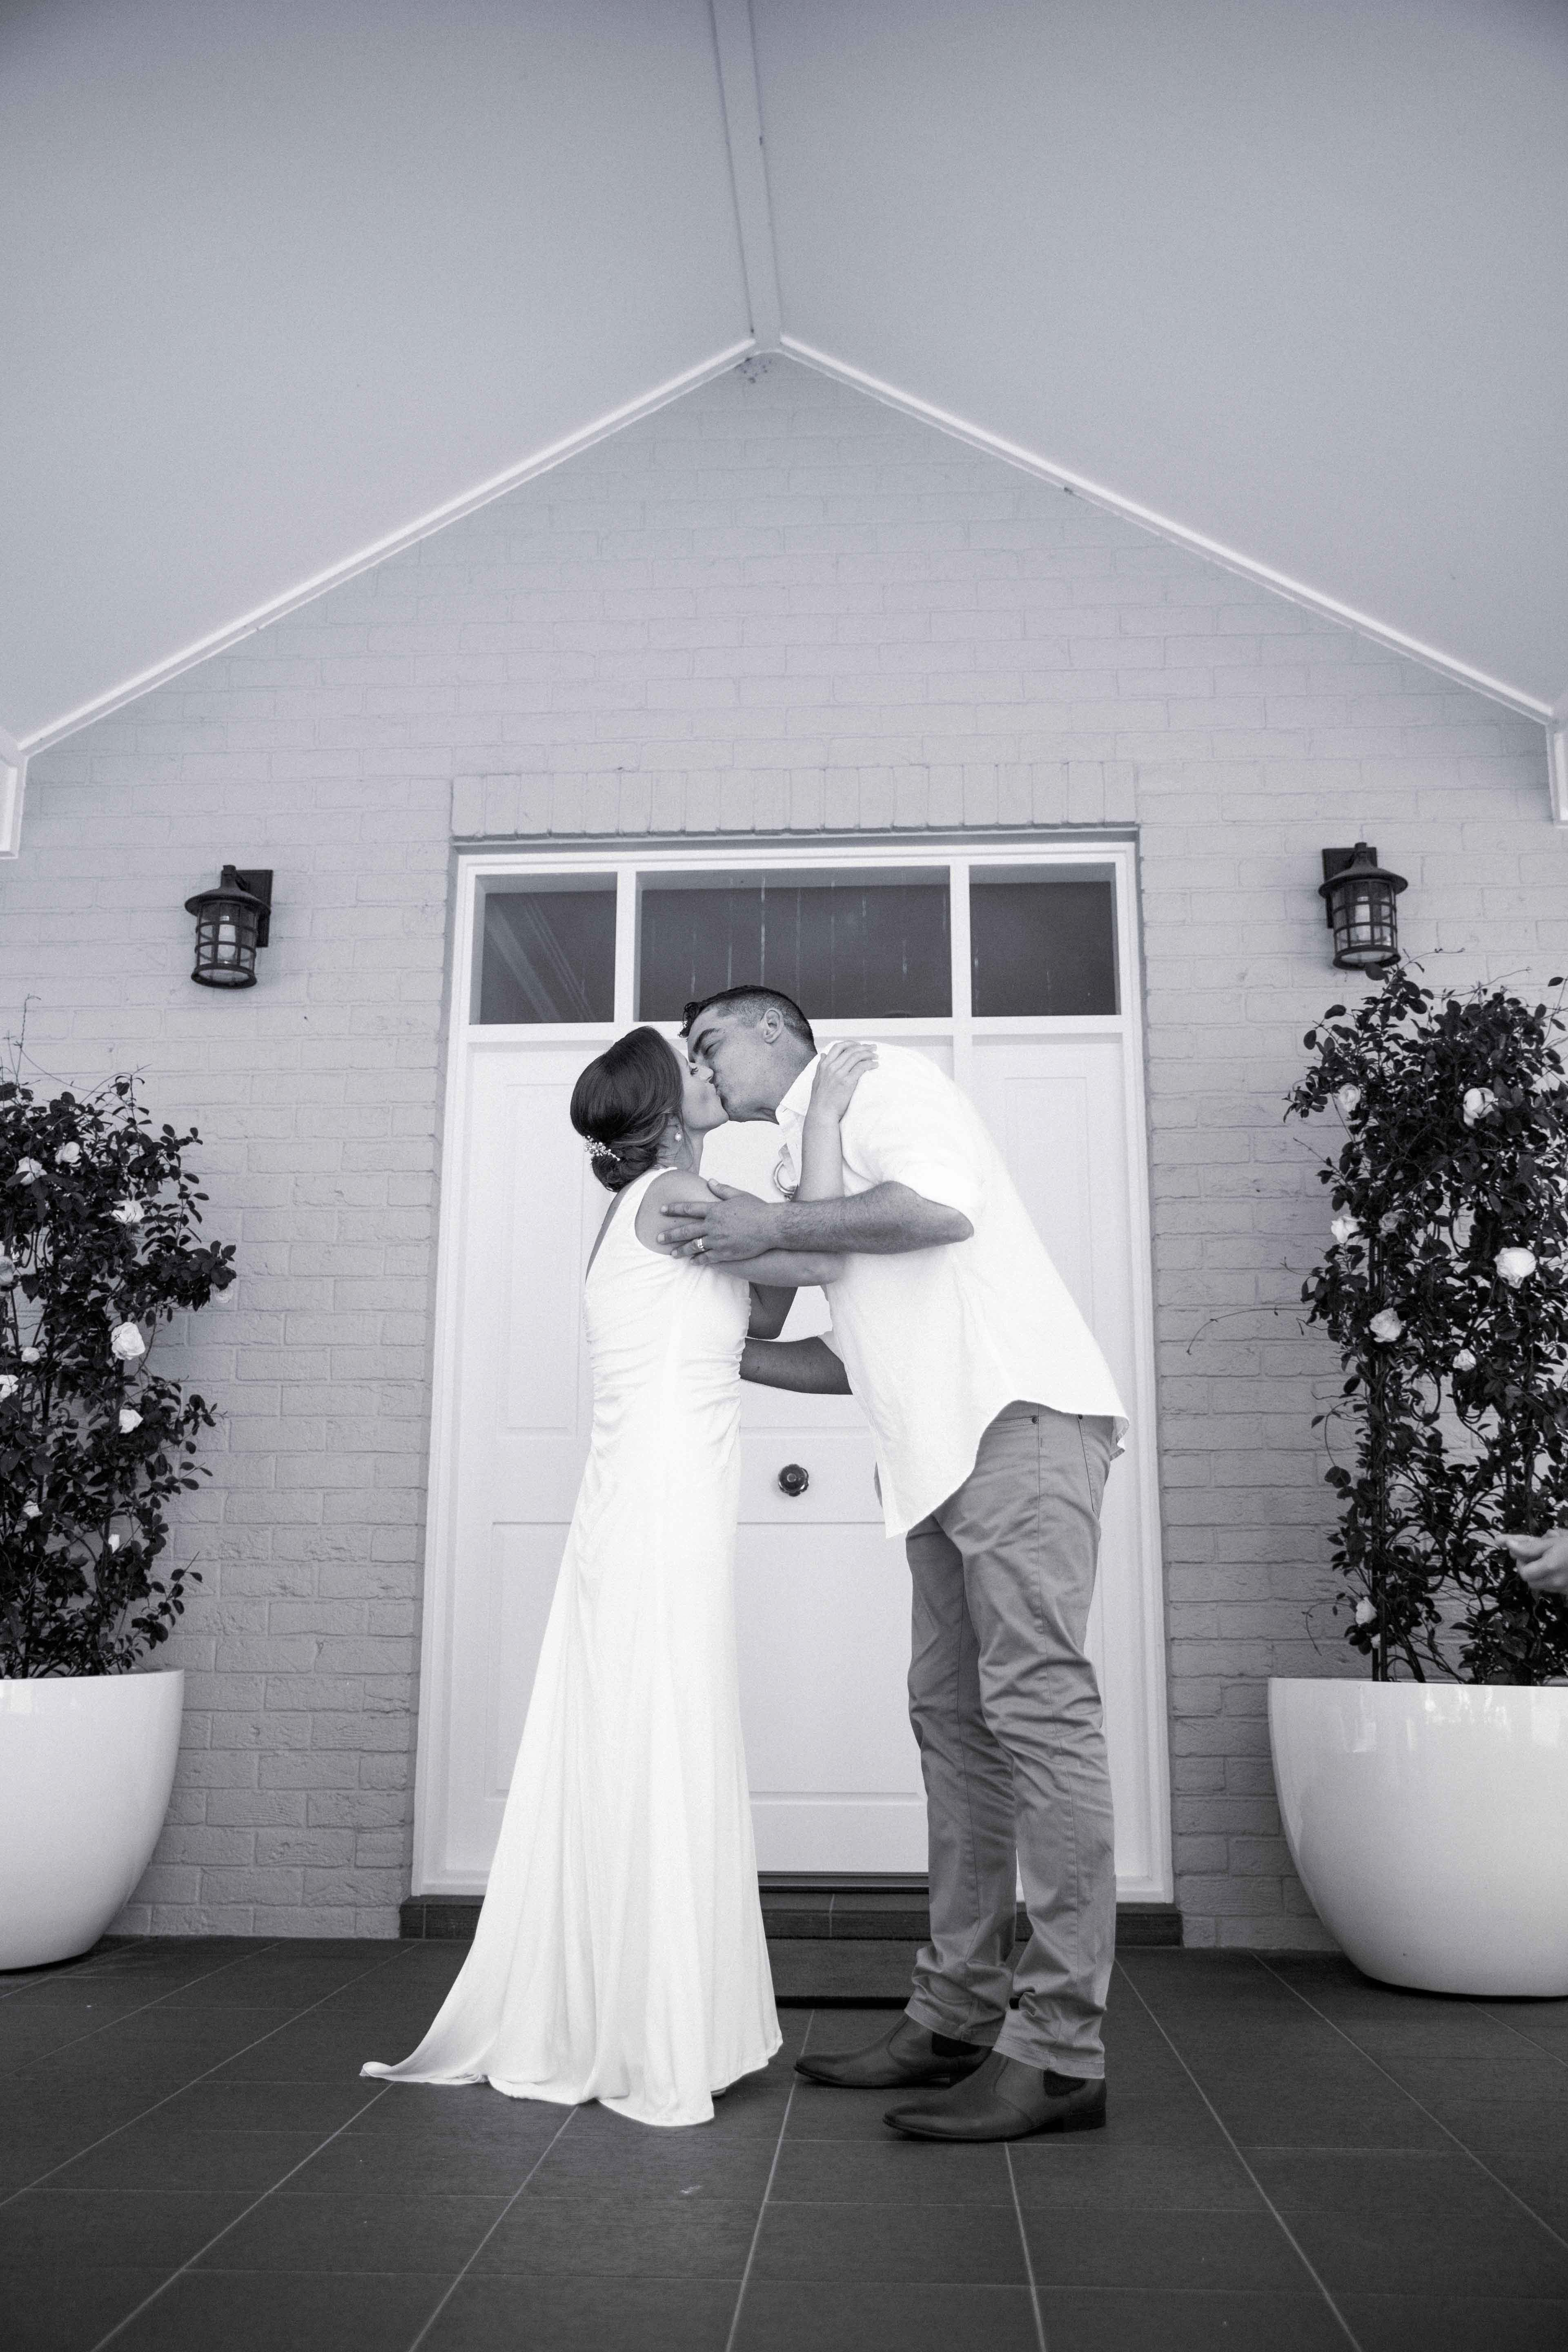 Newly married kisses at the alter at whitebridge, NSW